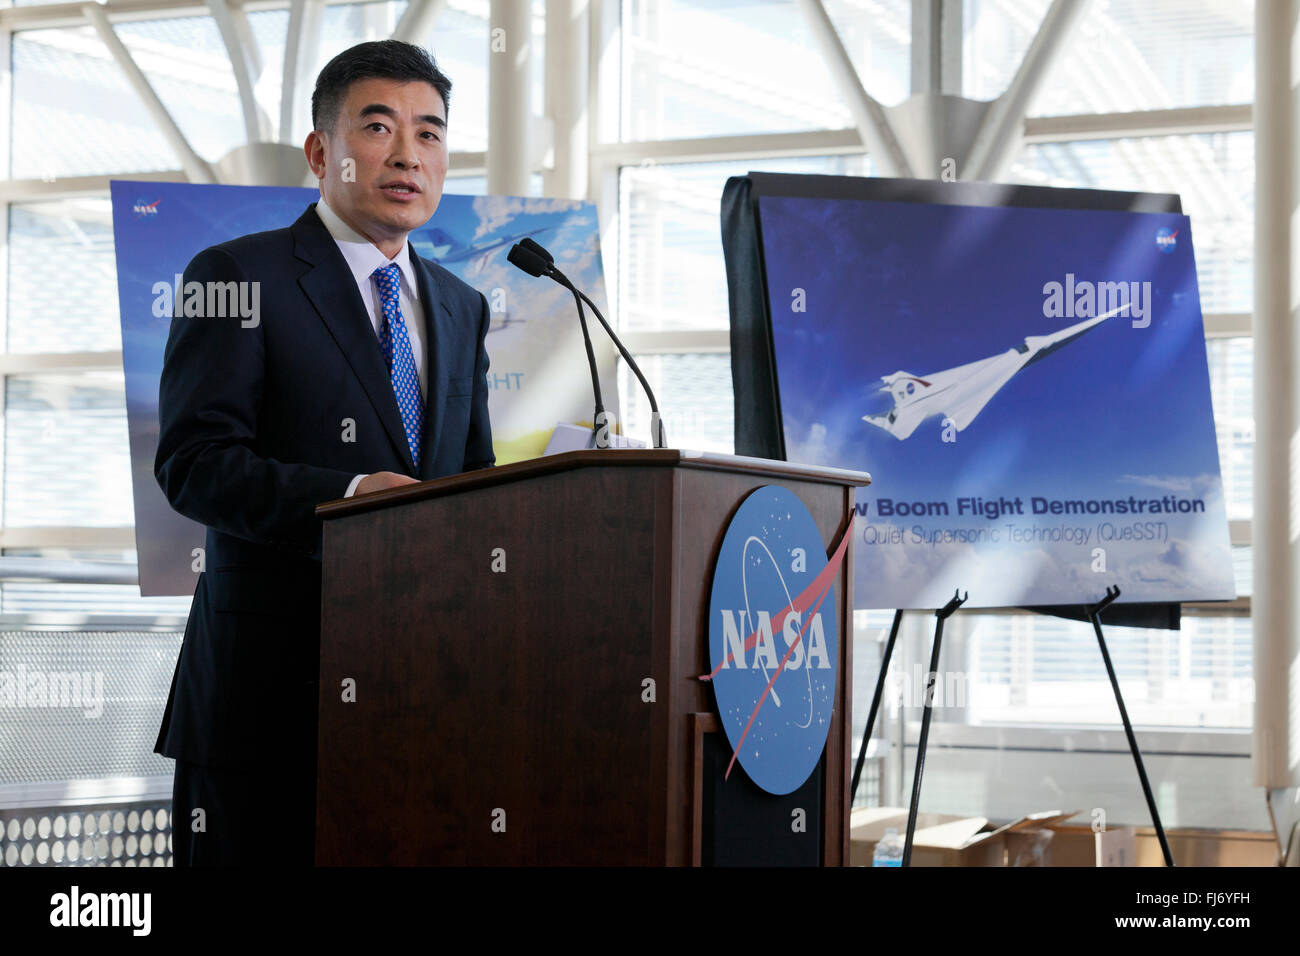 Washington, DC, USA. 29th February, 2016. NASA administrator Charles Bolden announces the return of supersonic passenger - Stock Image